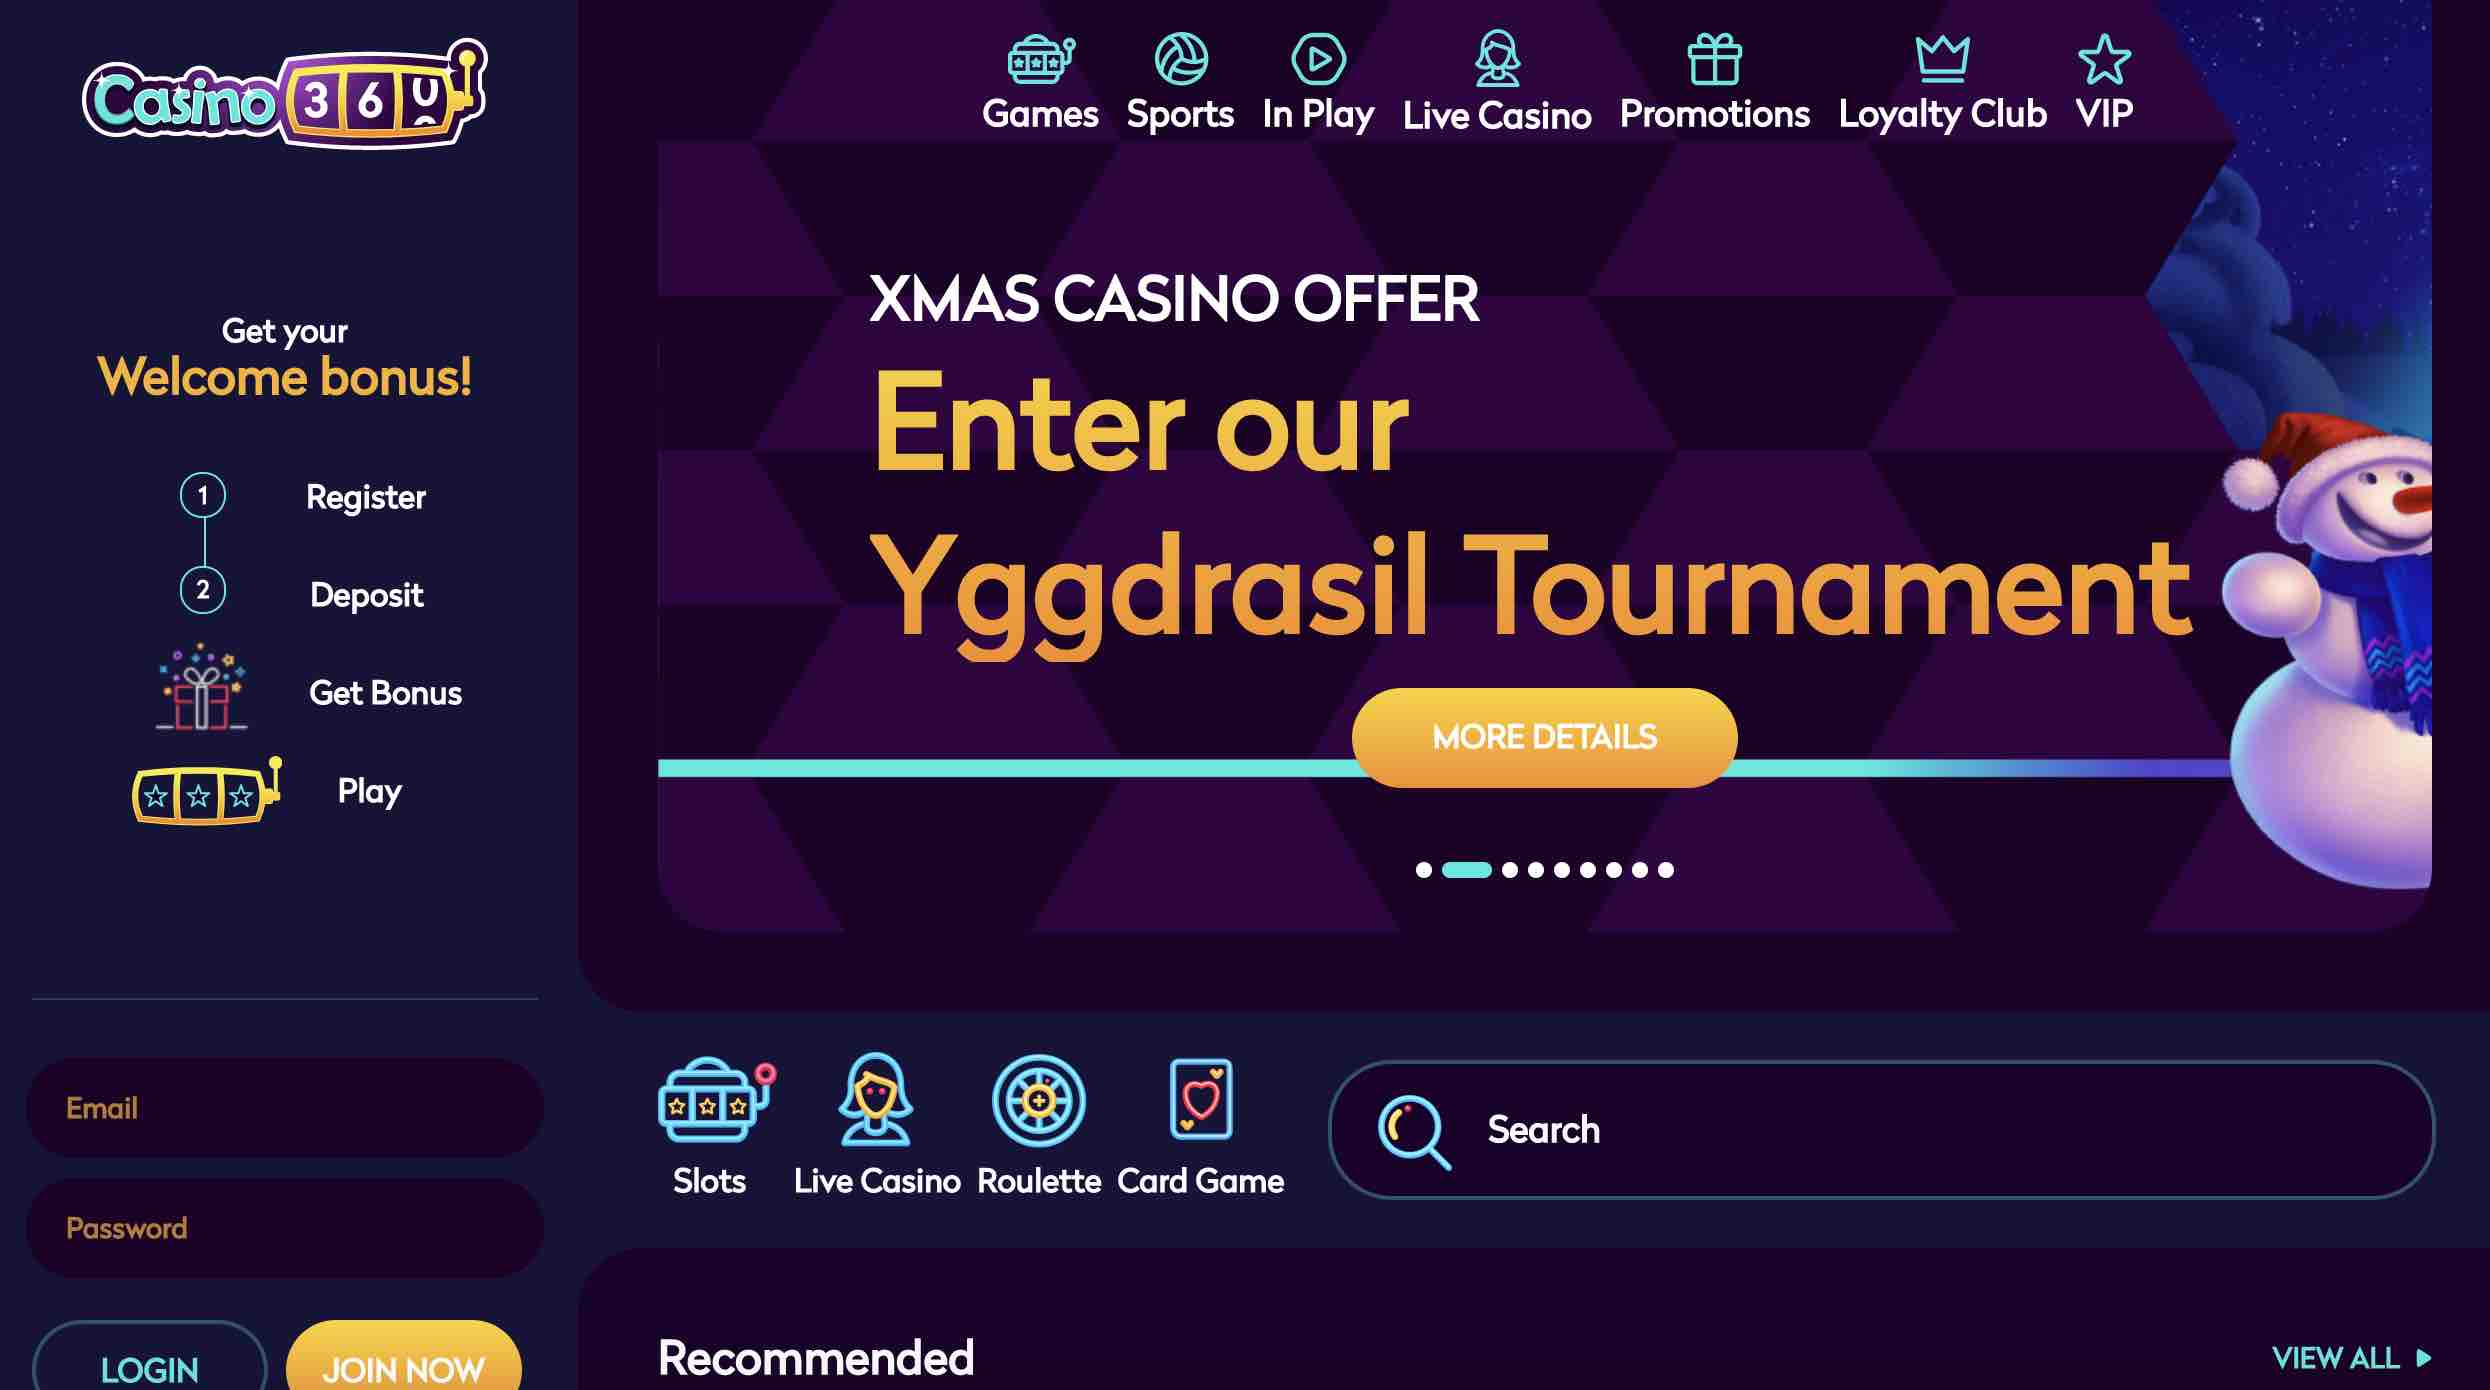 Casino360 Promotions and Tournaments